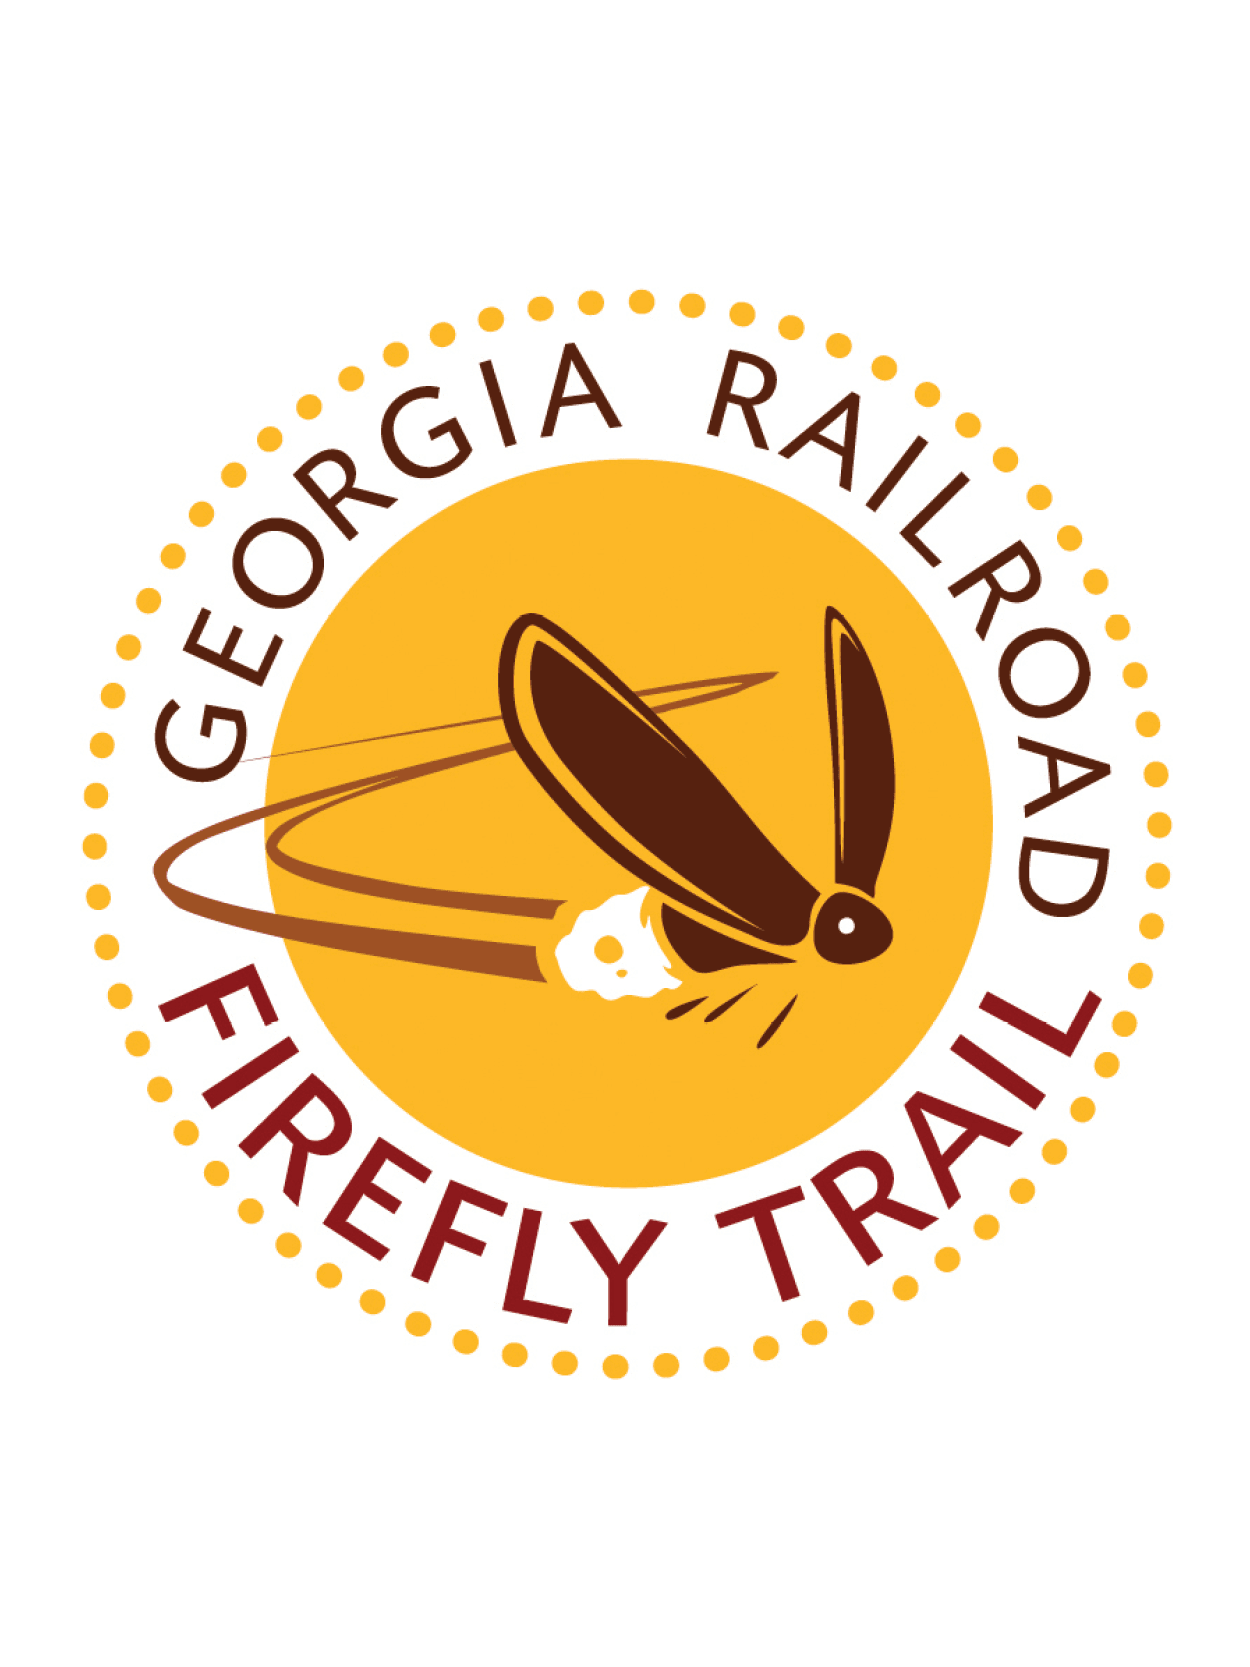 leisure services listens graphic - firefly trail logo - firefly in a circle